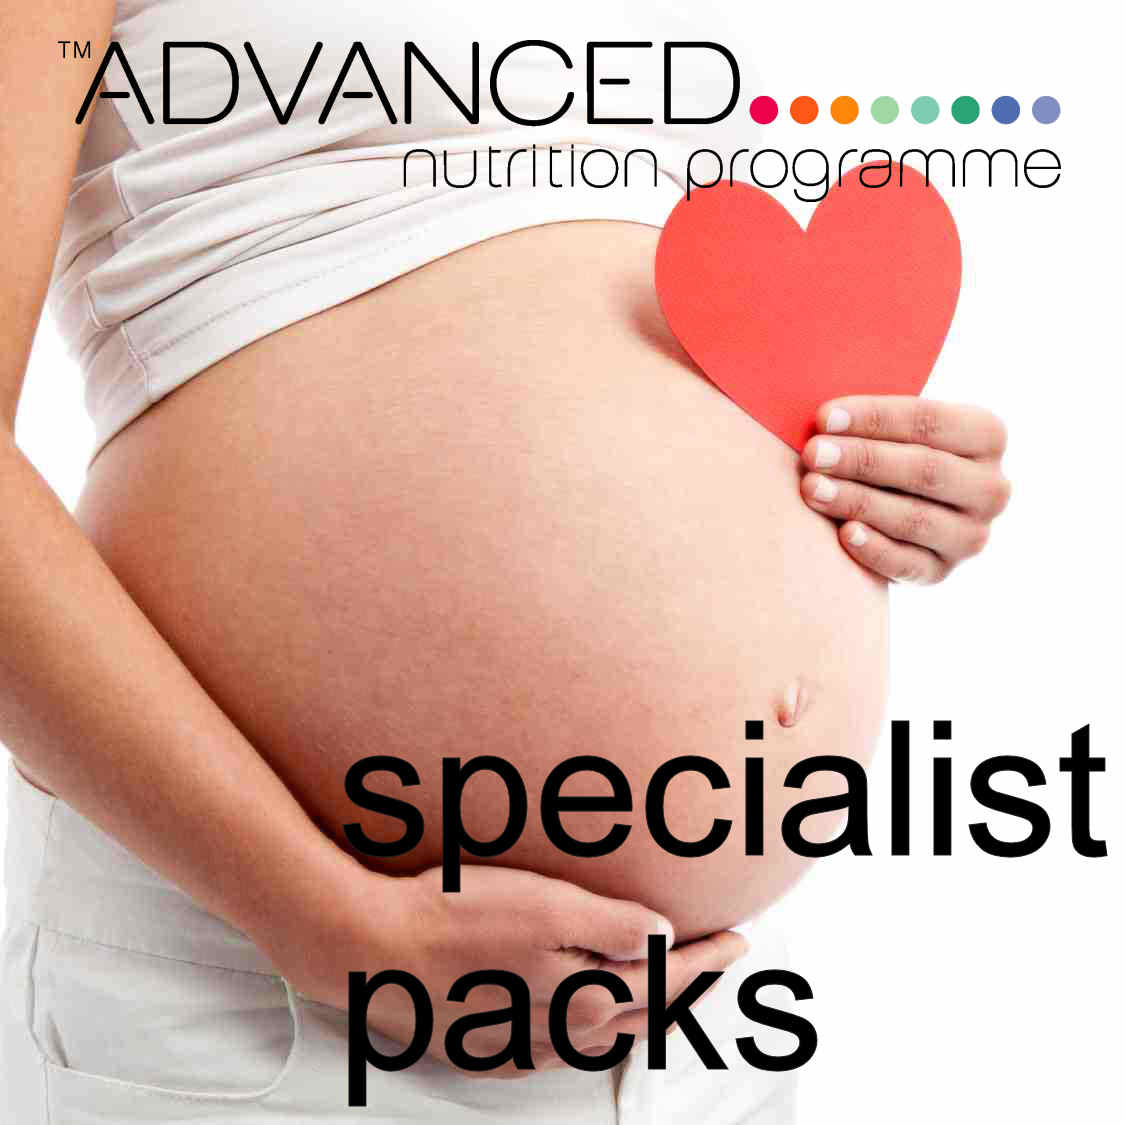 Advanced Nutrition Programme Specialist Packs